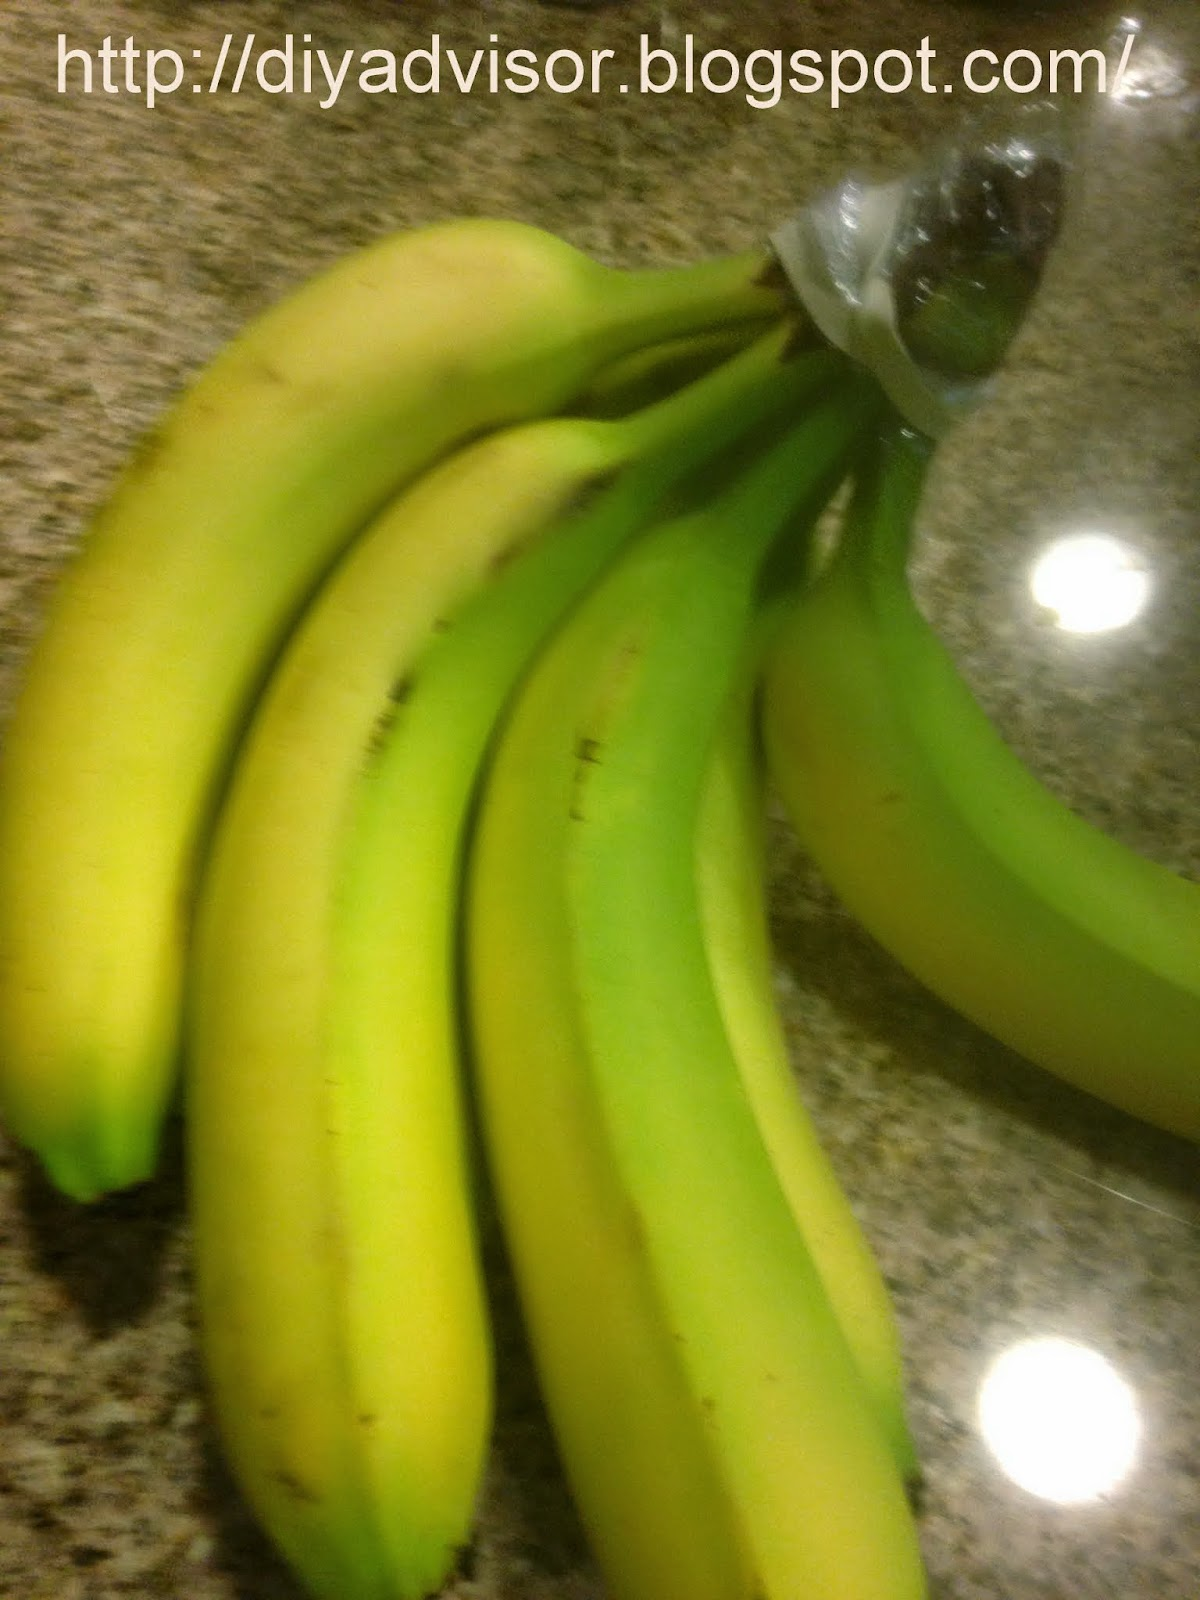 Ripe bananas in the kitchen